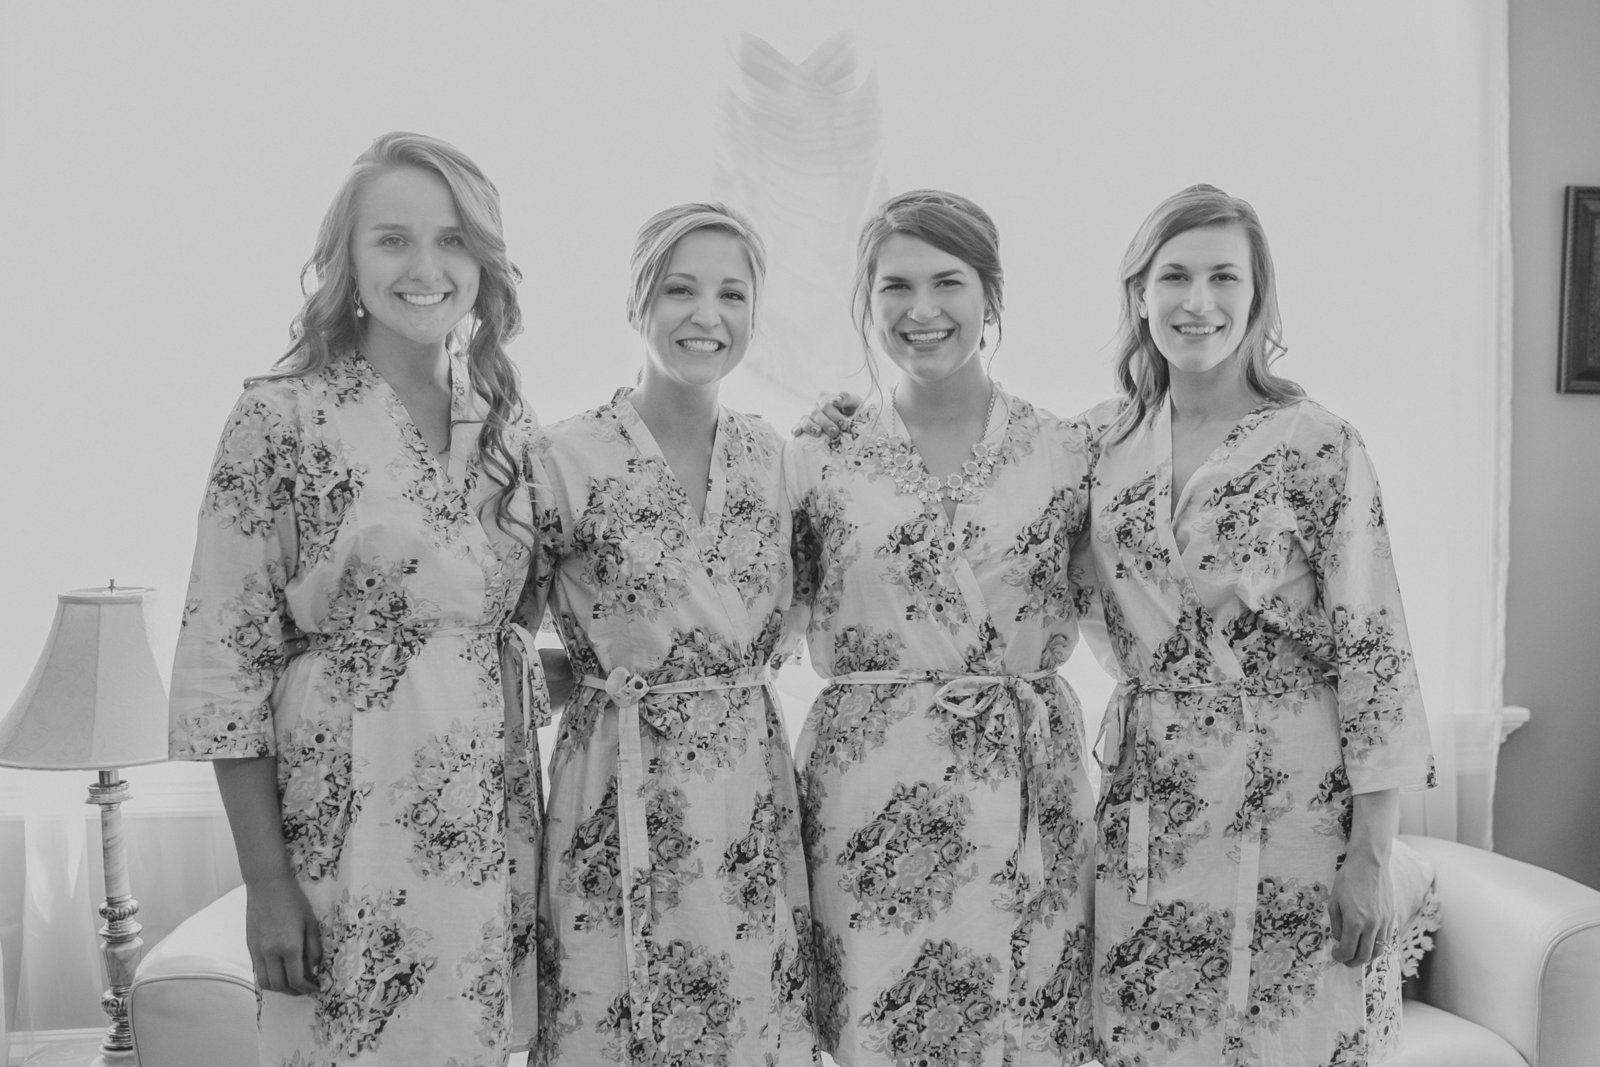 Picture of bride & bridesmaids getting ready in floral robes | Susie Moreno Photography